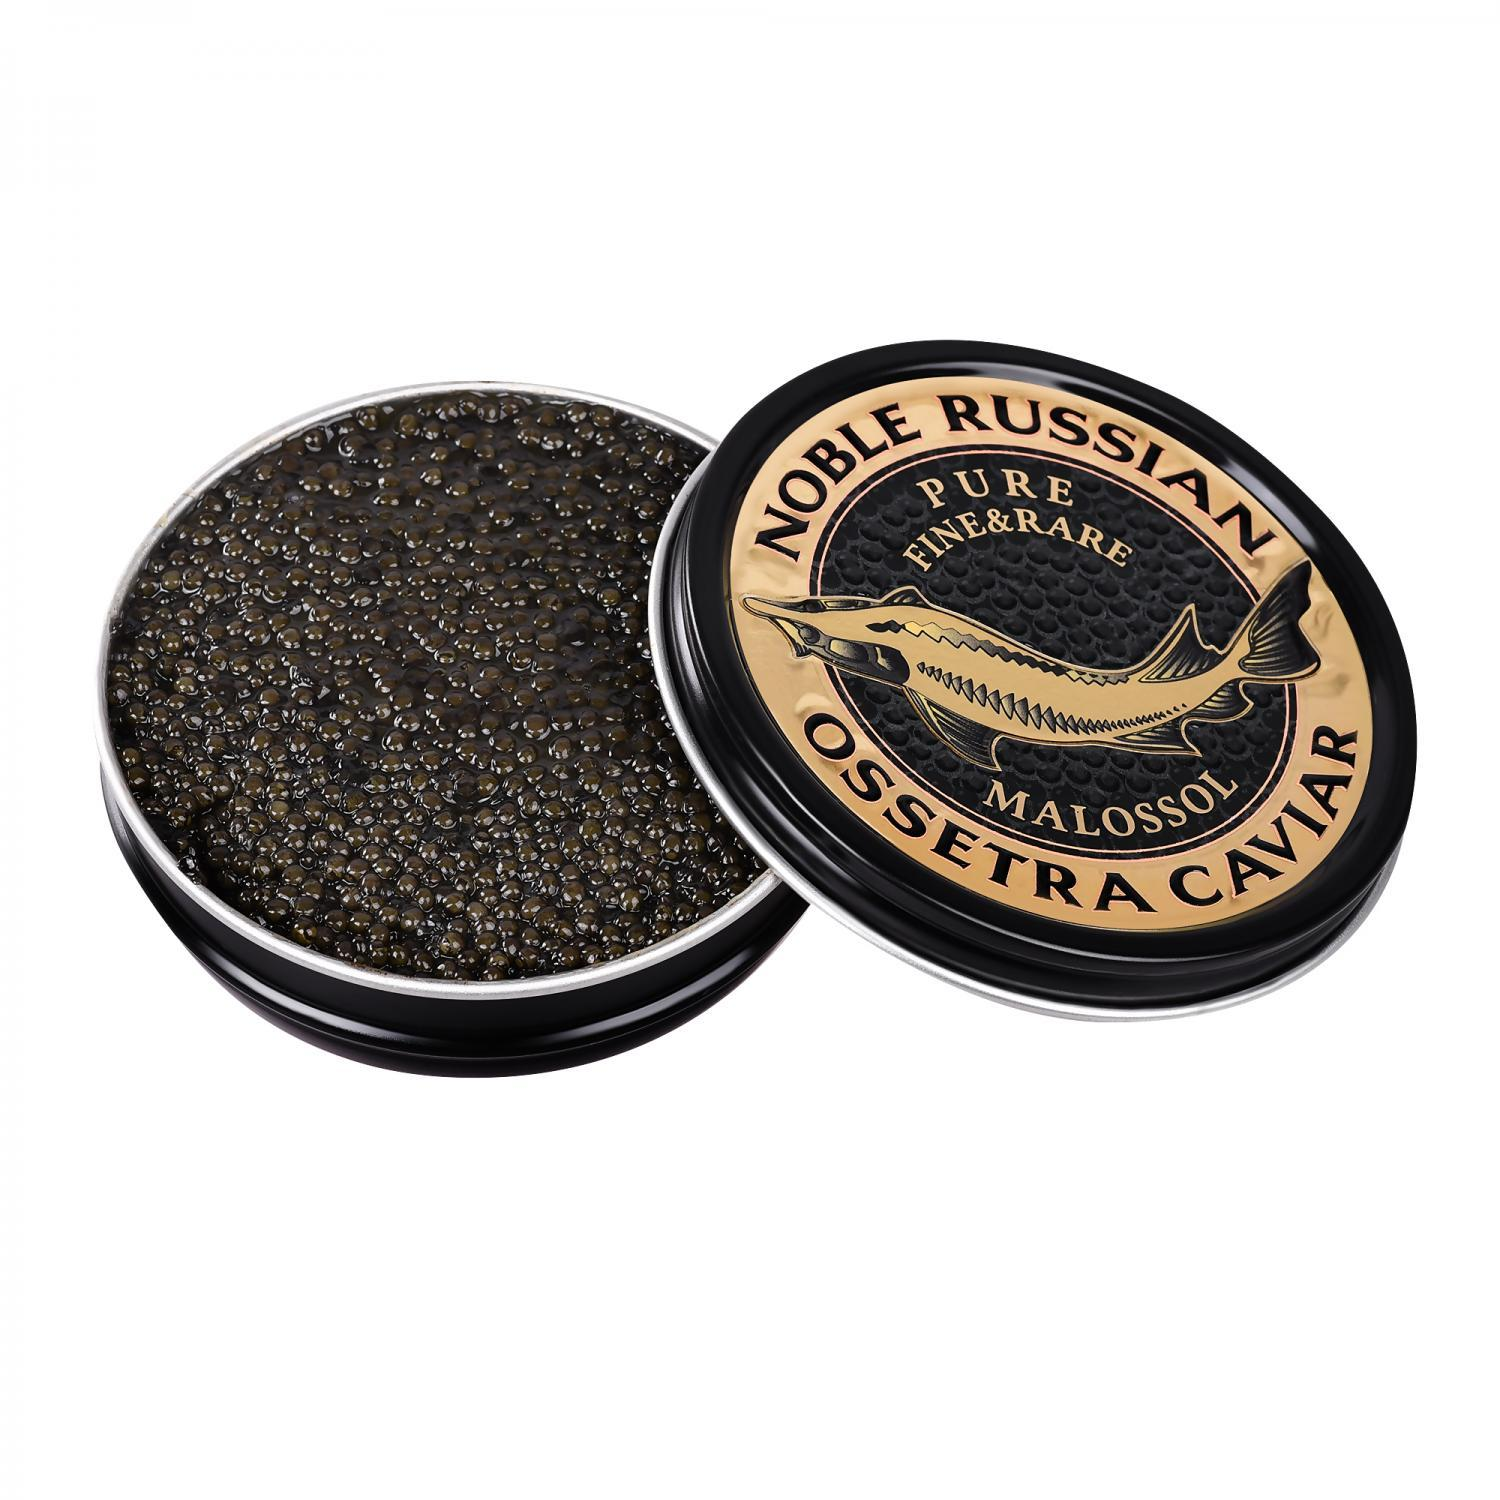 Royal Ossetra Caviar 30 Gr / 1.1 Oz